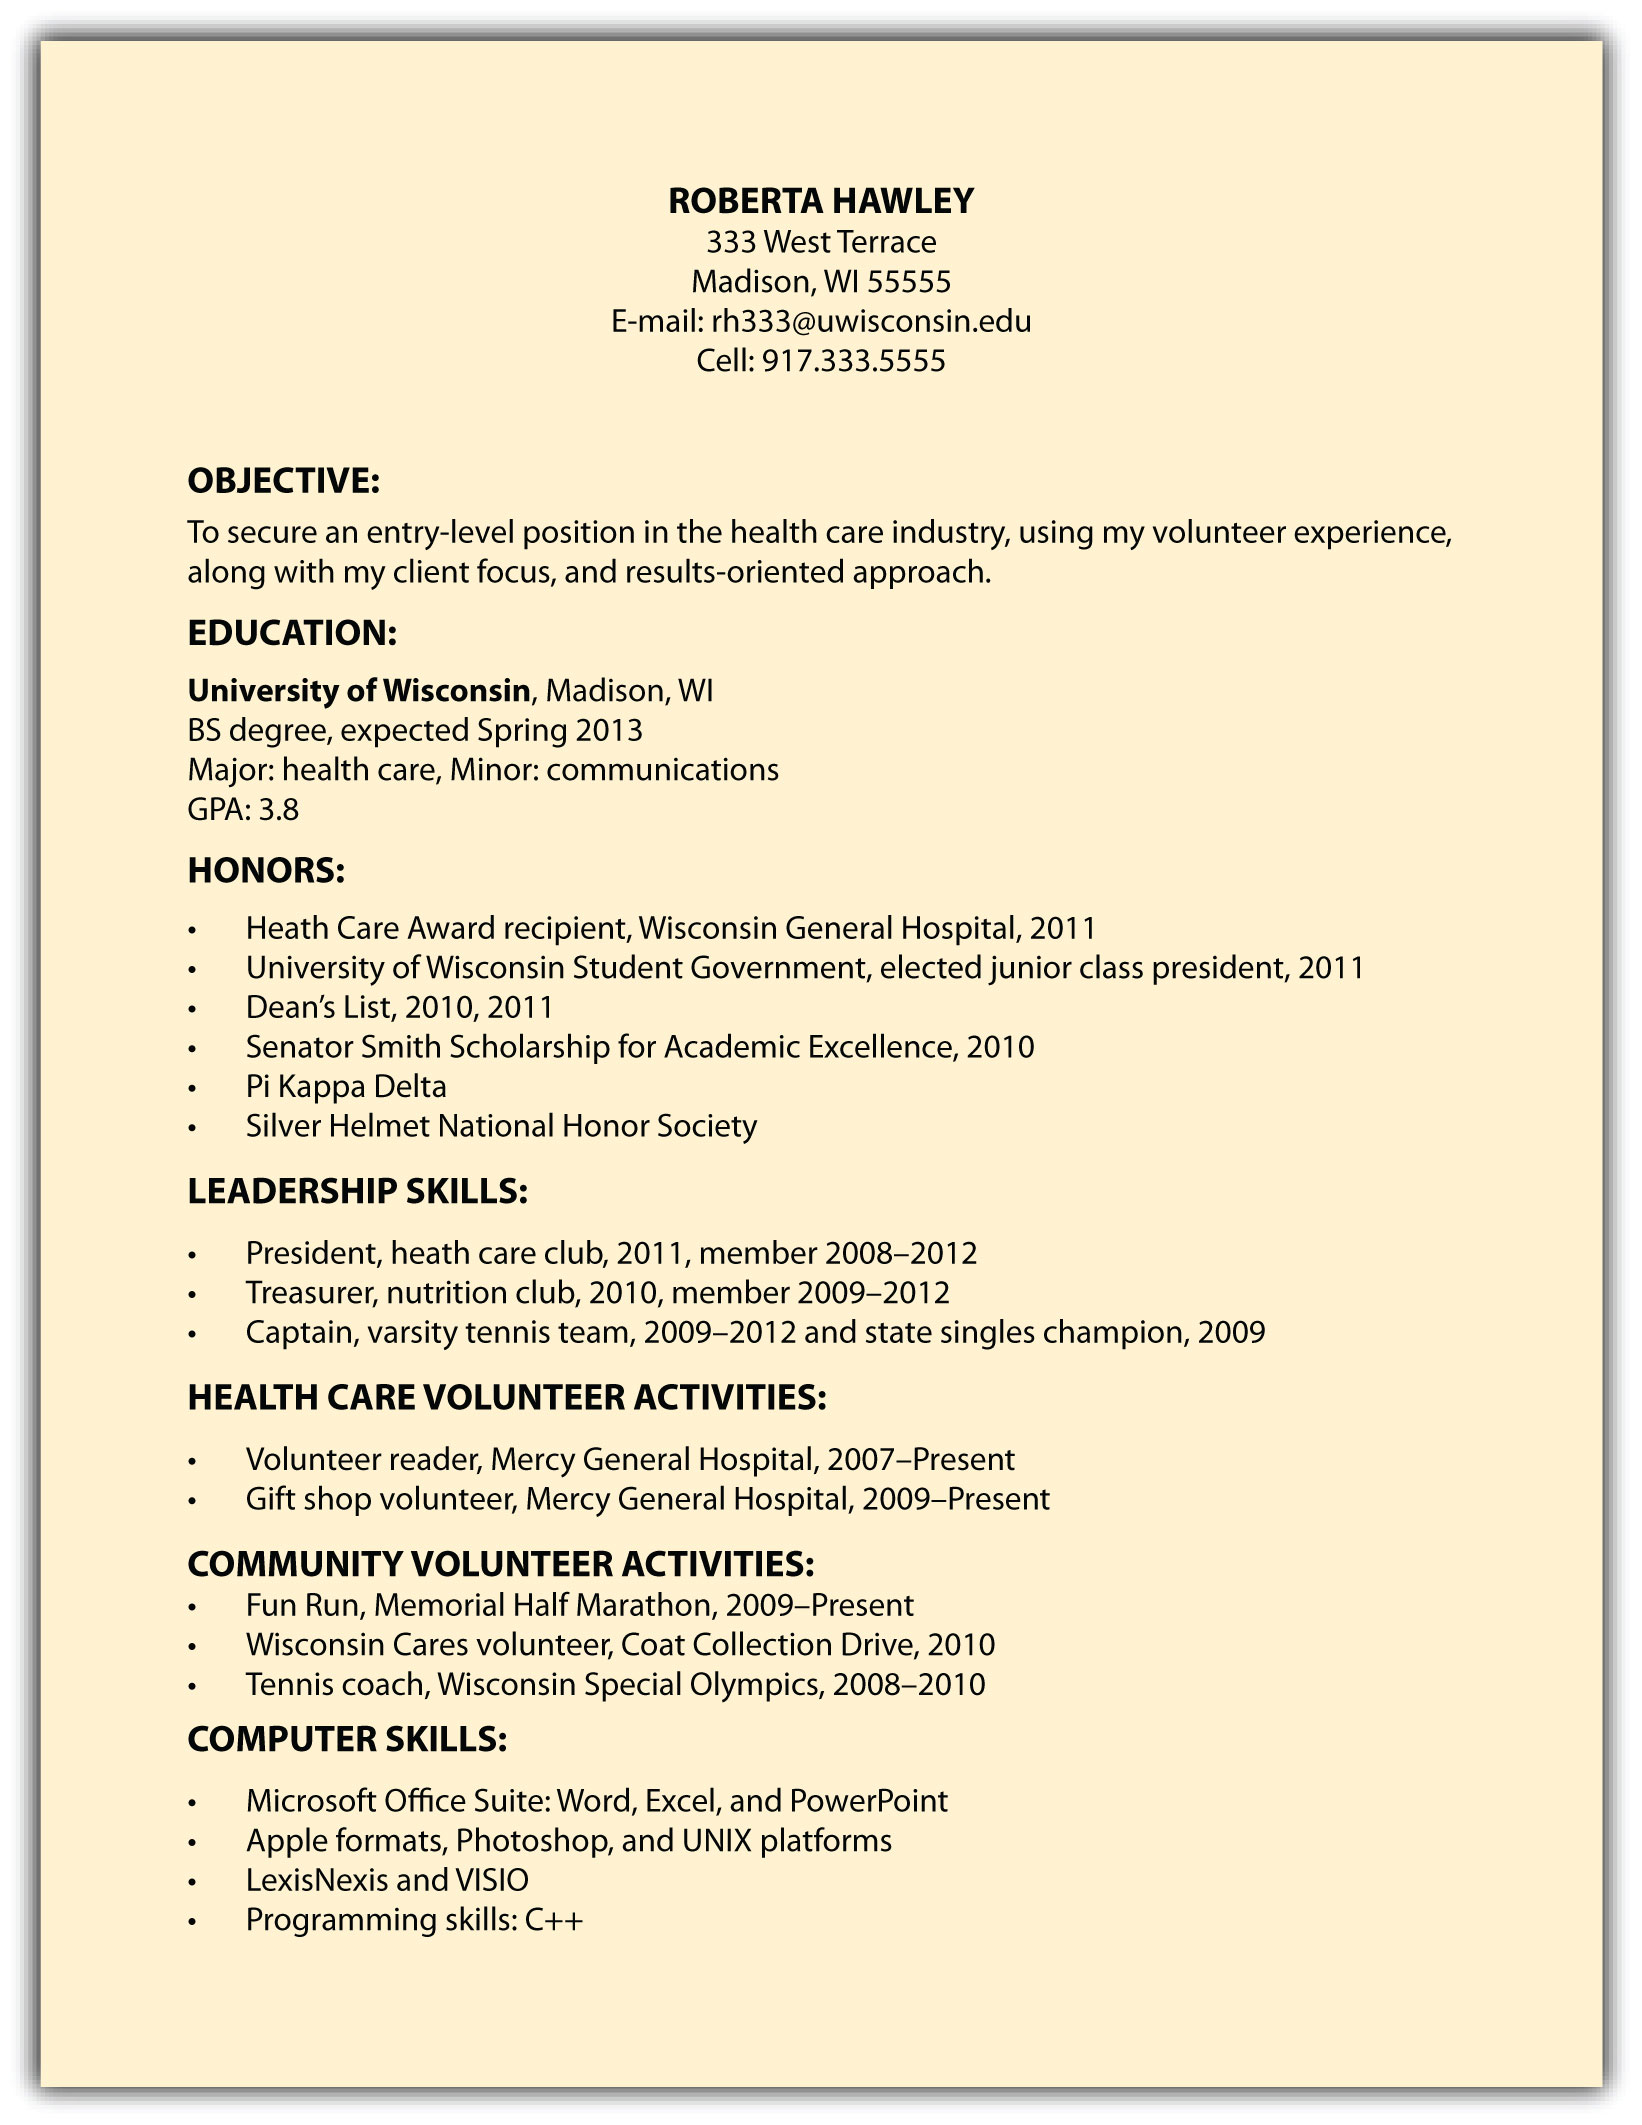 ojt resume objectives students examples objectives resume teaching objectives examples resumes lawteched teaching objective for resume - Job Objective For Resume